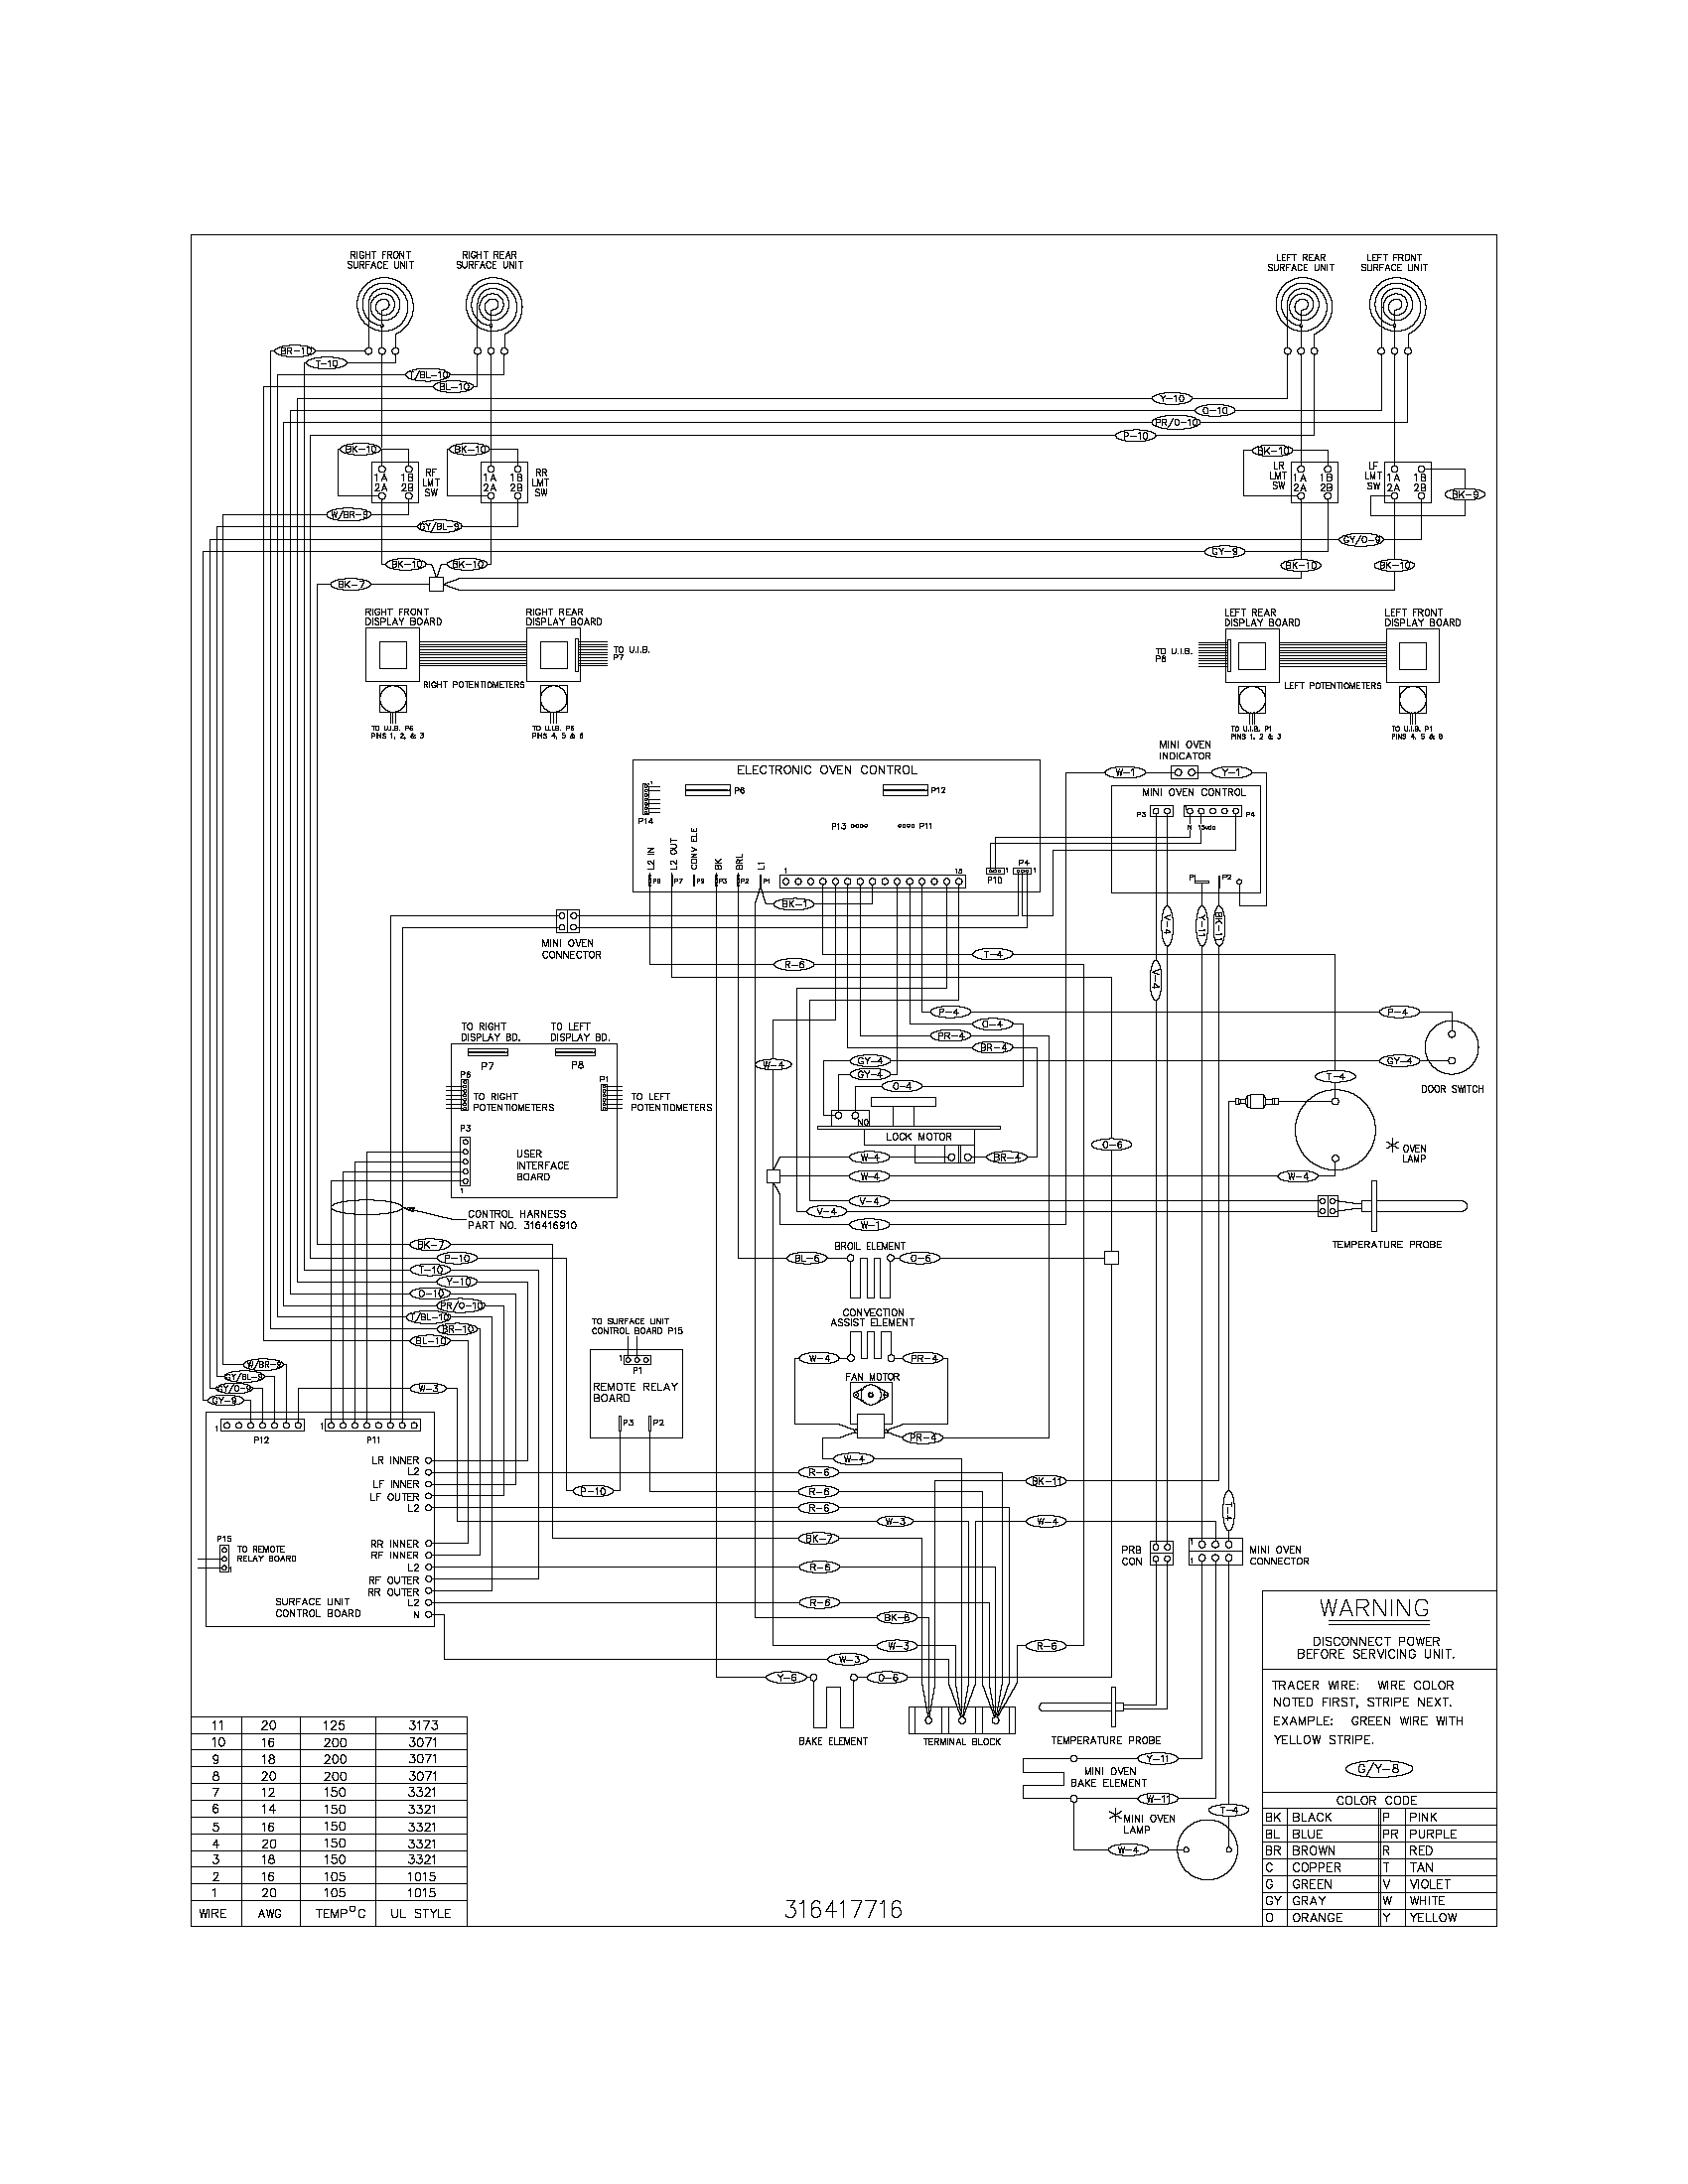 wiring diagram parts frigidaire glefm397dsb electric range timer stove clocks and odes wiring diagram at edmiracle.co